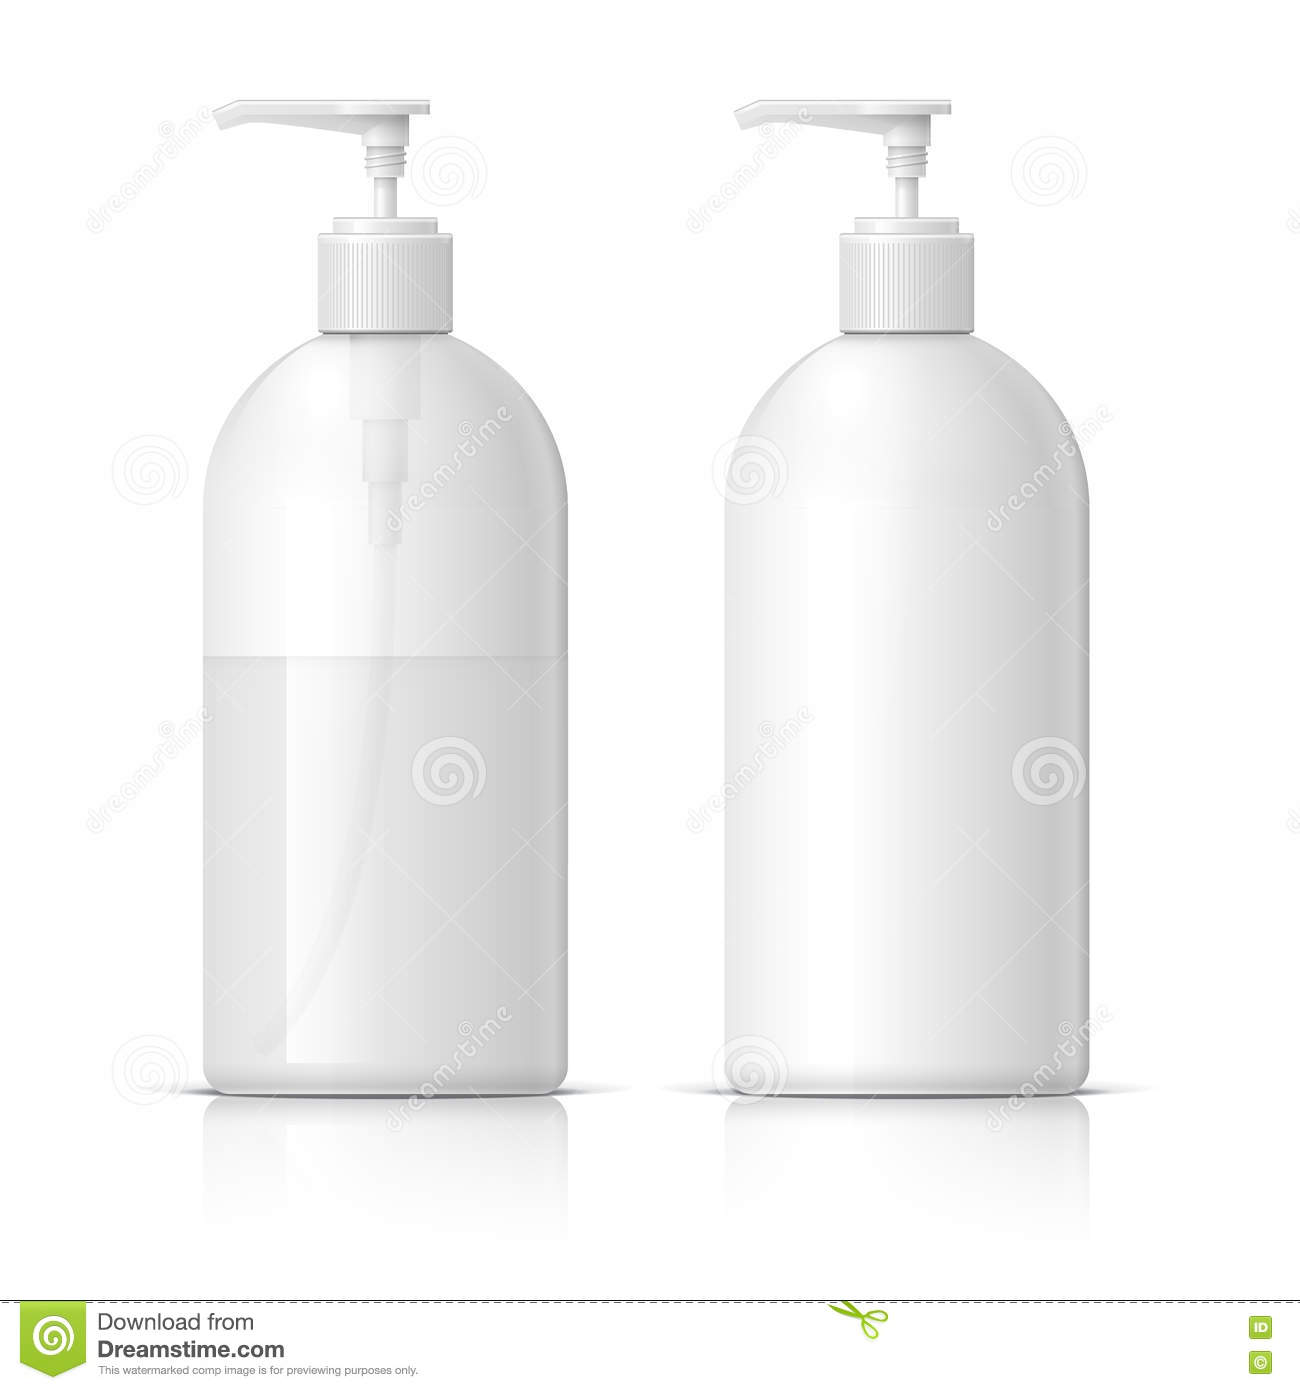 liquid template filters - realistic dispenser for soap cartoon vector